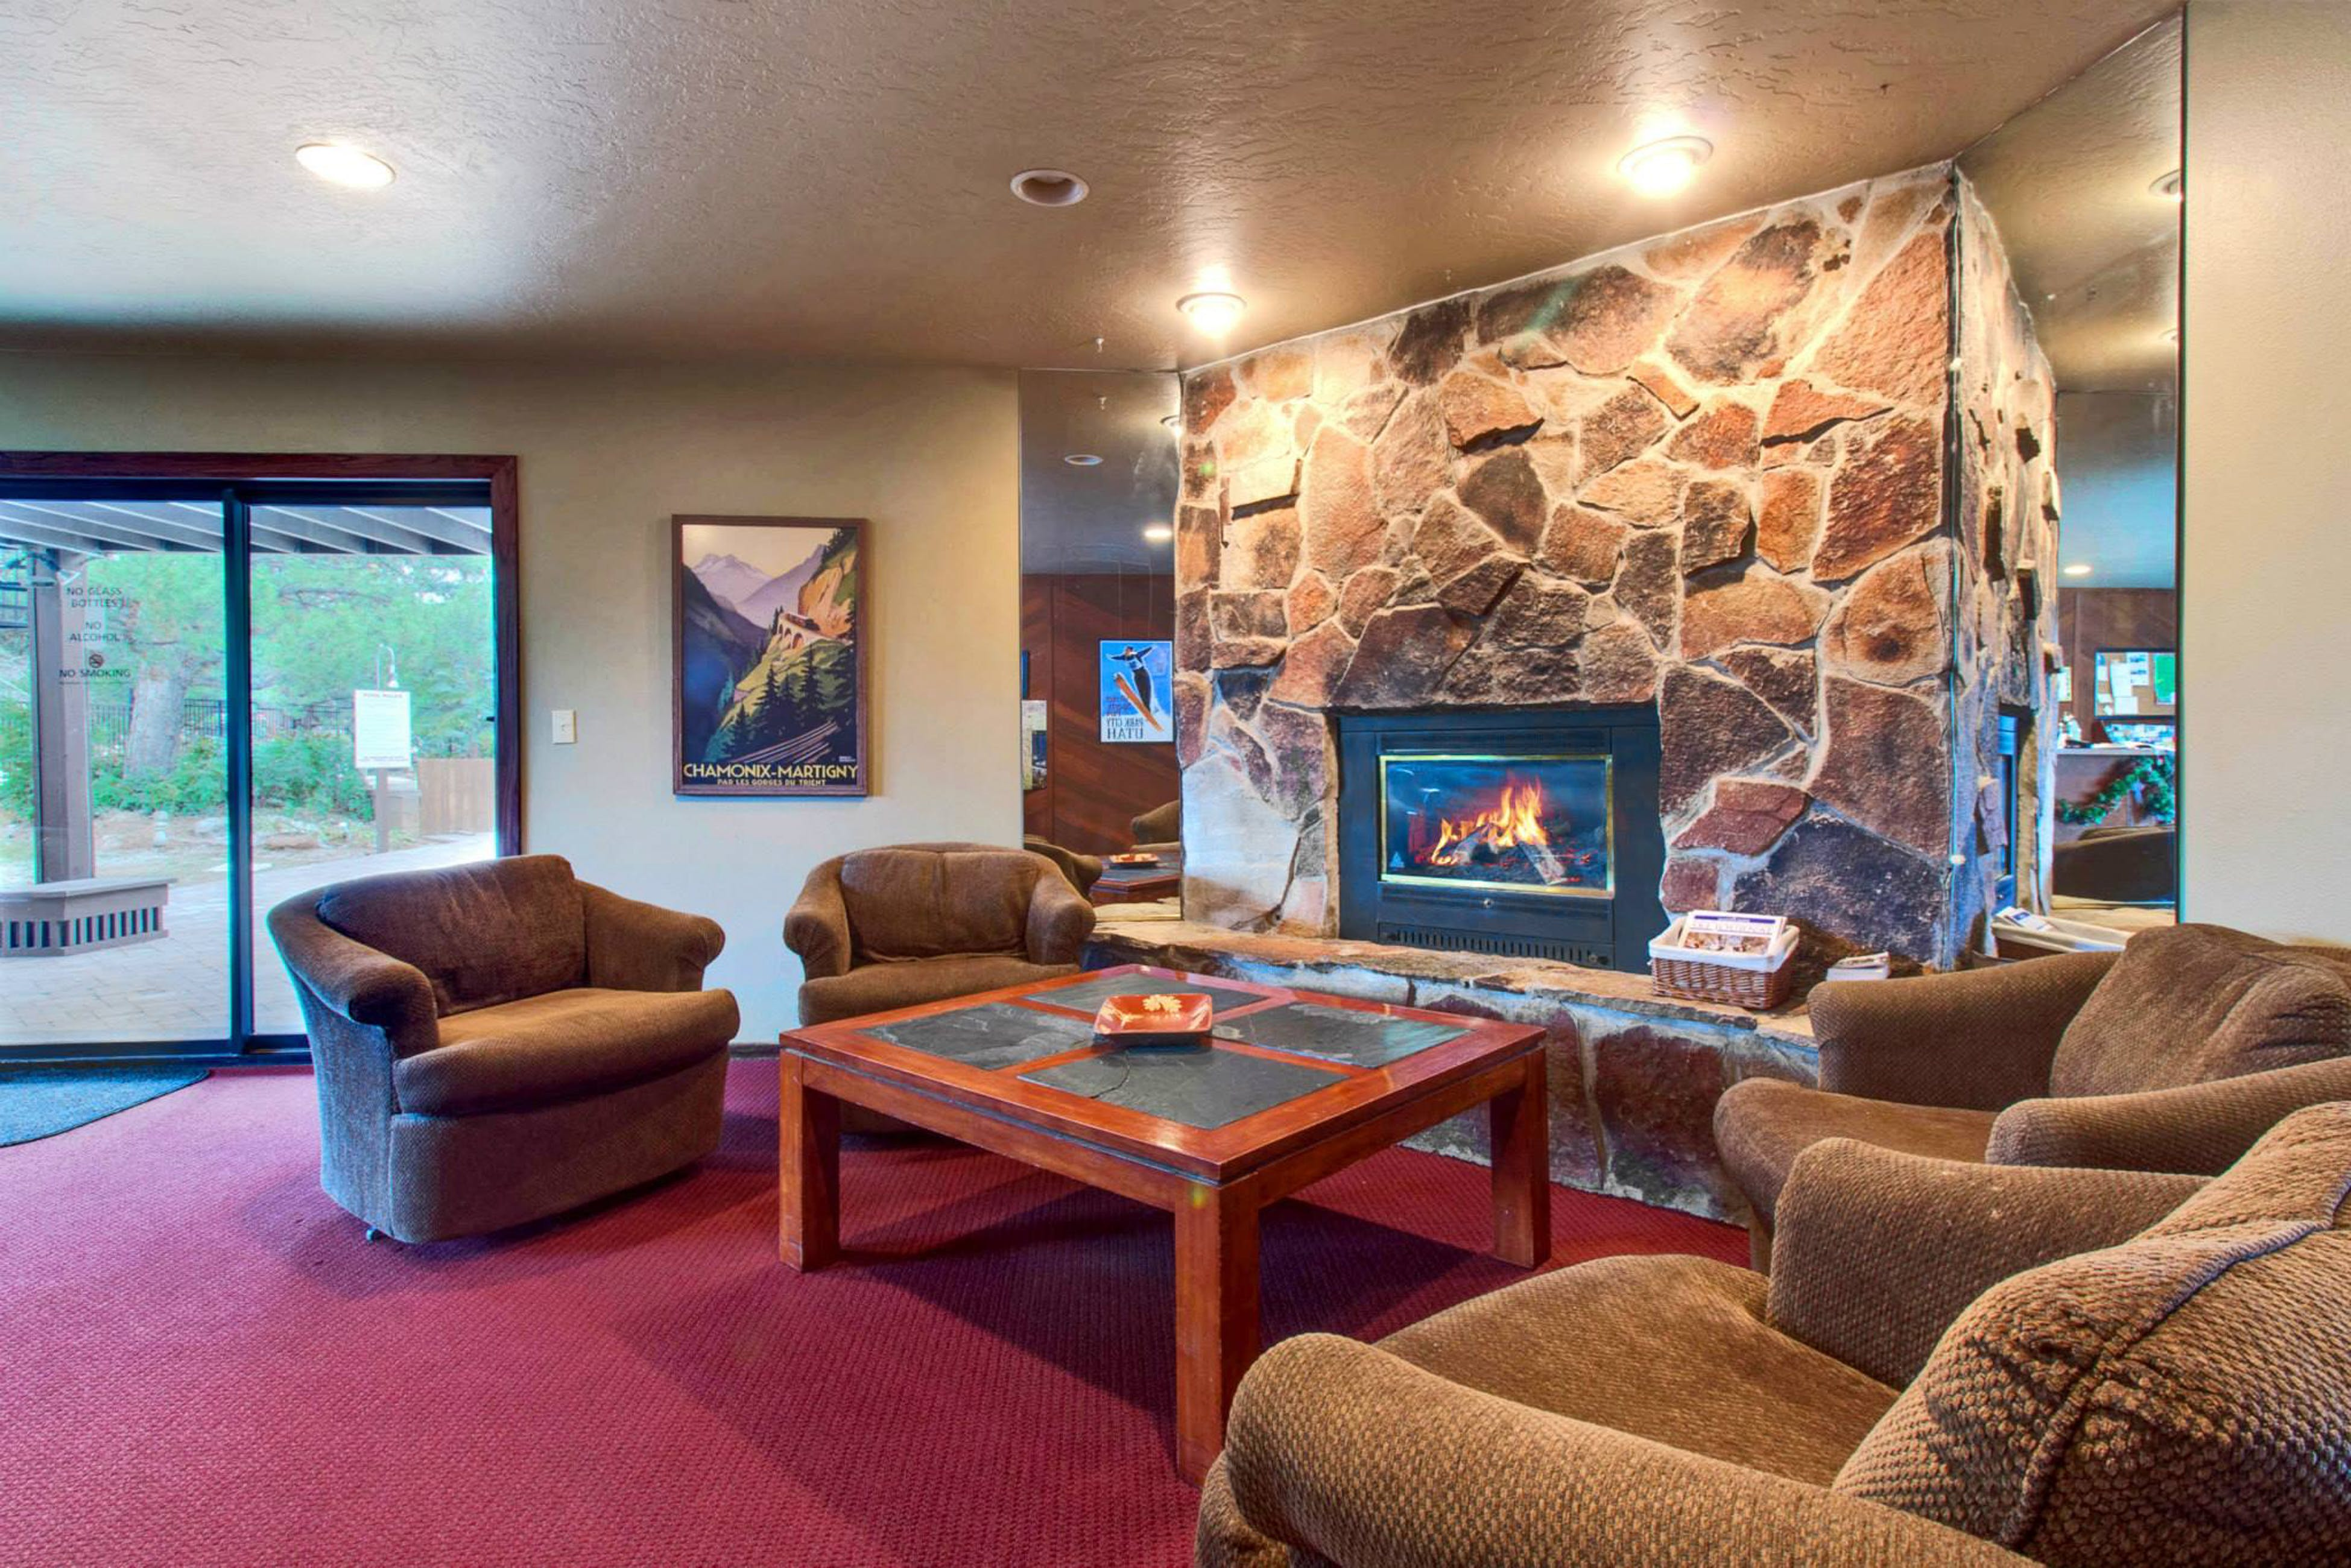 Cozy sitting area located in Canyons Village in Park City, Utah